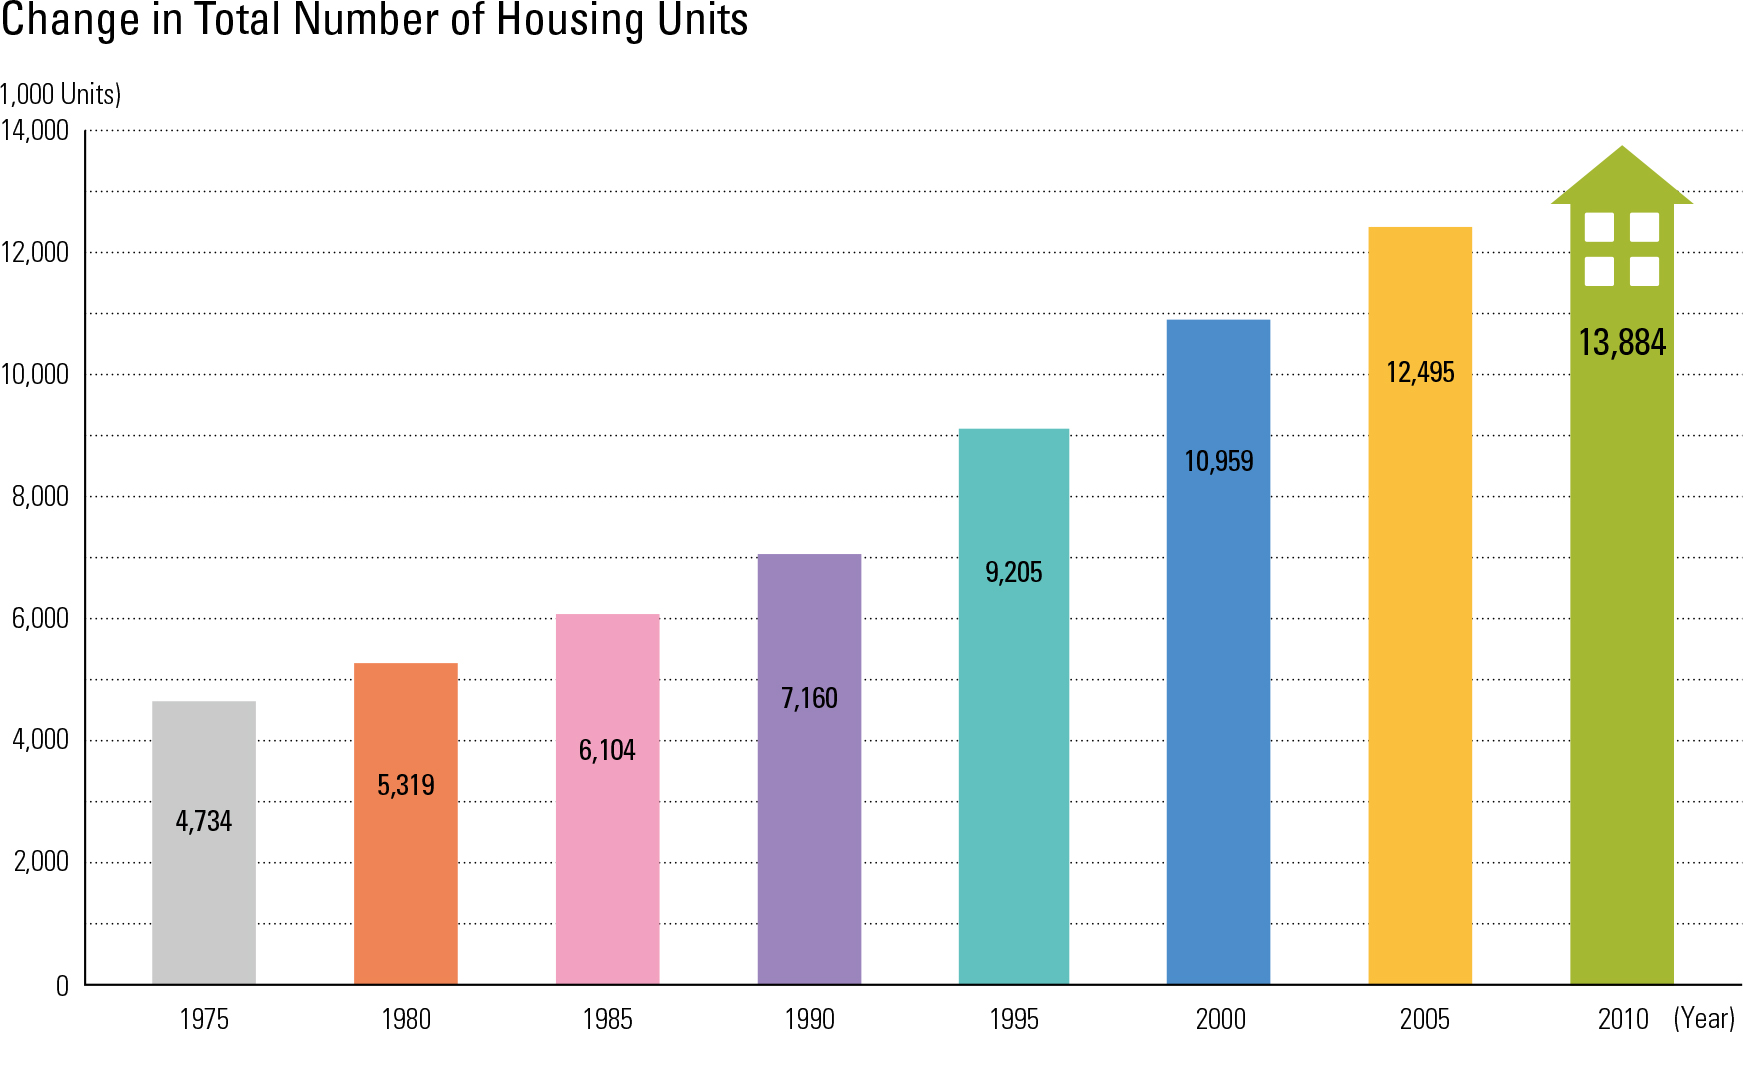 """Change in Total Number of Housing Units<p class=""""oz_zoom"""" zimg=""""http://imagedata.cafe24.com/us_3/us3_64-2_2.jpg""""><span style=""""font-family:Nanum Myeongjo;""""><span style=""""font-size:18px;""""><span class=""""label label-danger"""">UPDATE DATA</span></span></p>"""